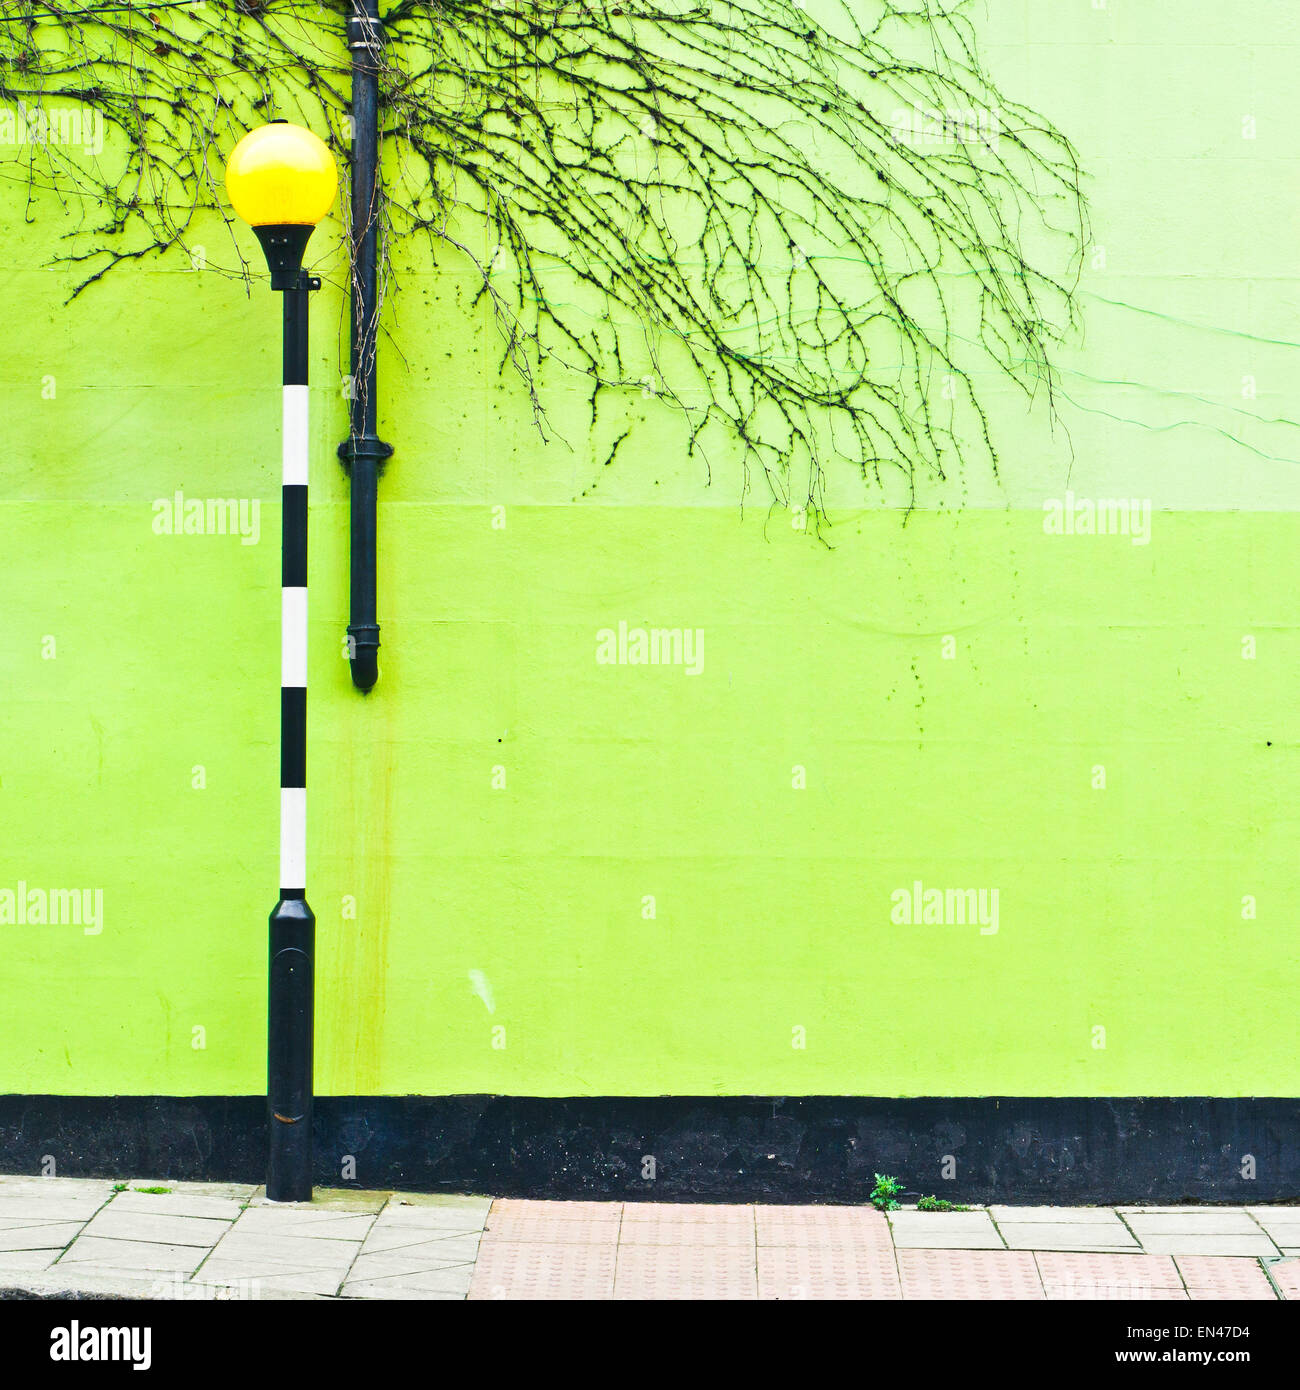 A light at a zebra crossing in front of a green wall in London, UK Stock Photo